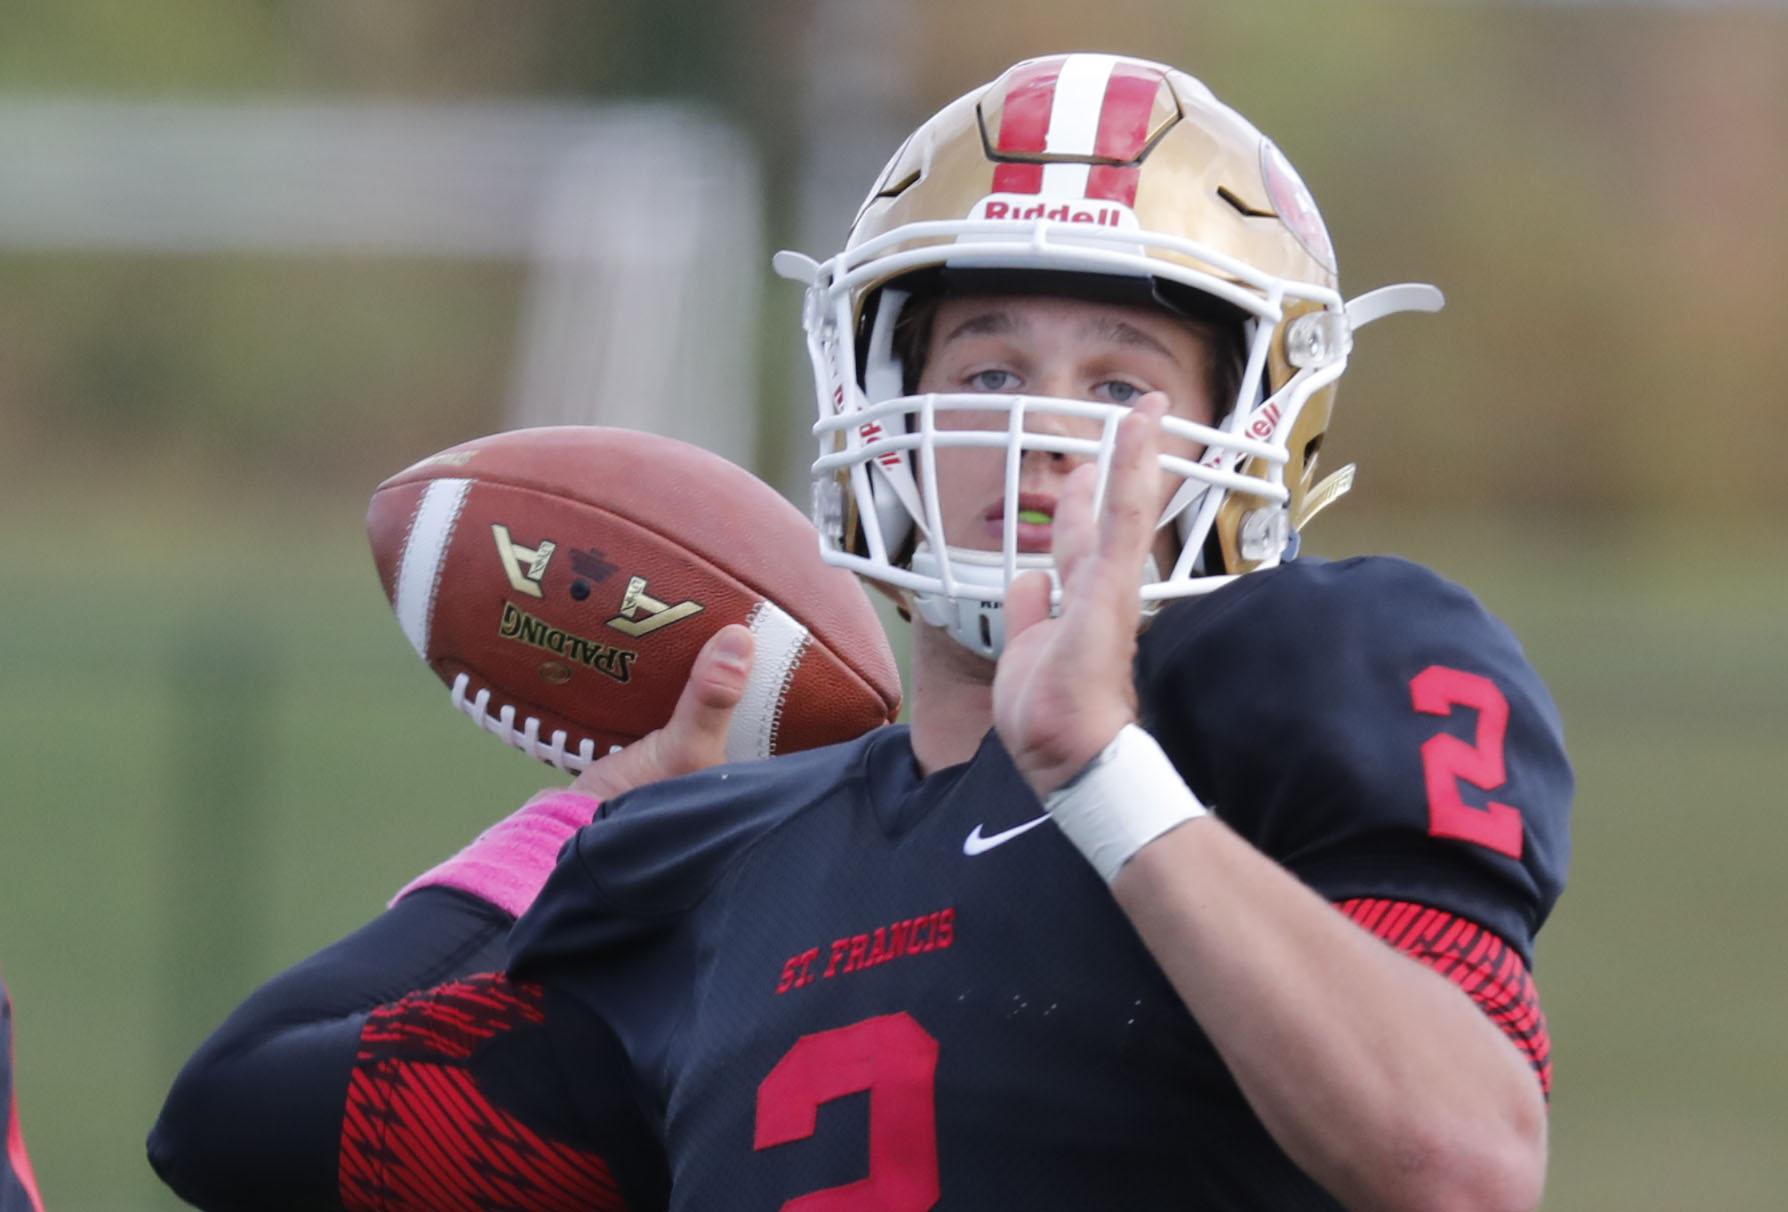 St. Francis quarterback Jerry Hickson passing Joe Licata for No. 1 on the Western New York career passing yards list is among the many highlights from the 2016 football season. (Harry Scull Jr./Buffalo News)